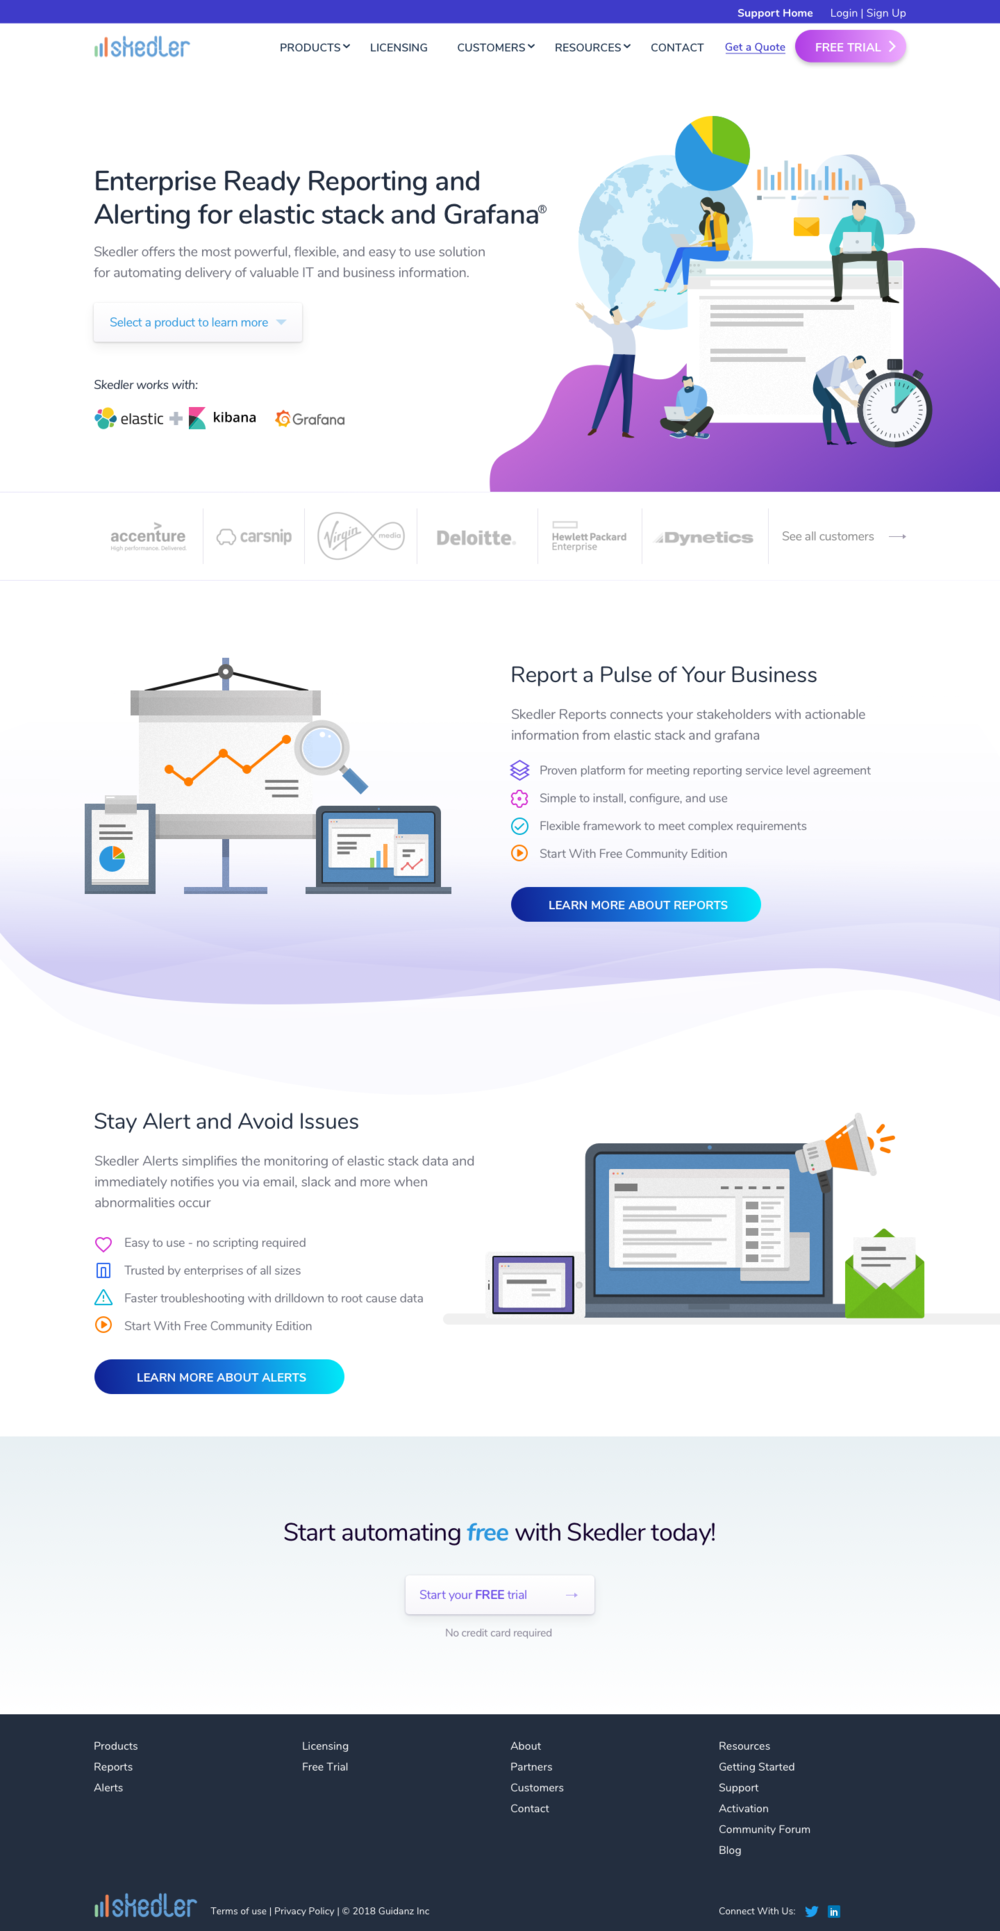 Homepage - The main navigation has been simplified with an emphasis on the free trial download button. The style of the illustrations has been carefully chosen based on the design direction. The summary of each product is displayed with inviting visuals to learn more.